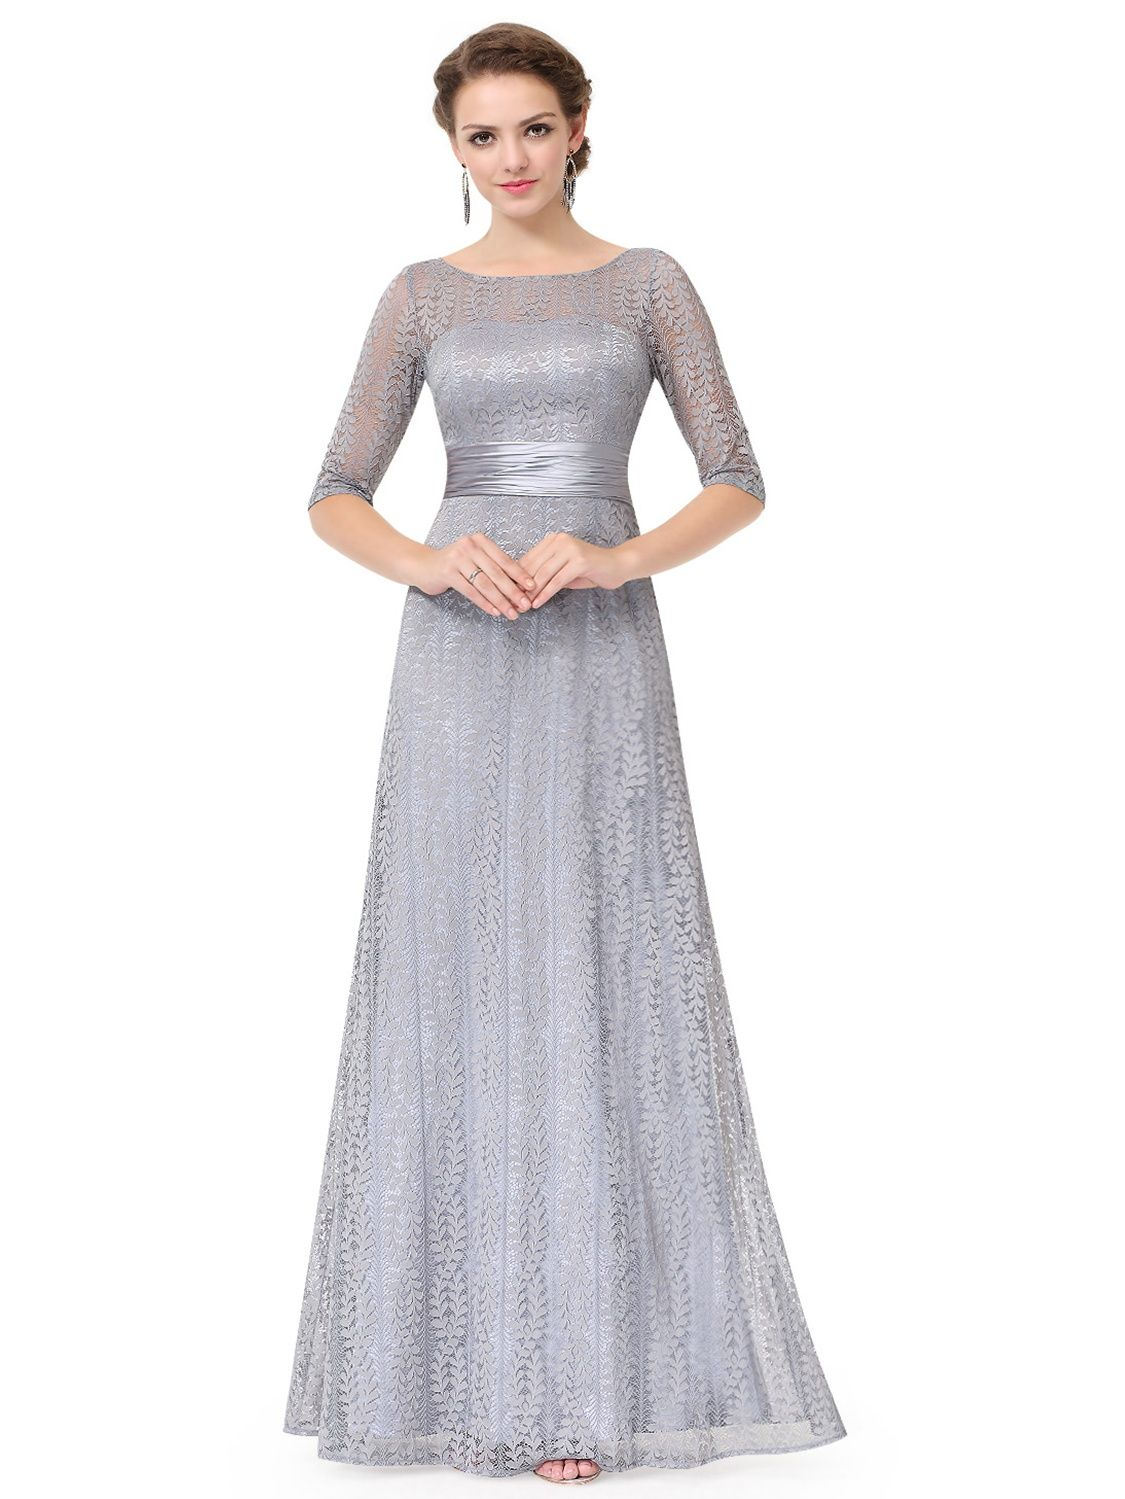 Ever Pretty Ever Pretty Women S Floral Lace Formal Evening Dress Mother Of The Bride Dresses For Women 08878 Gray Us4 Walmart Com In 2021 Elegant Wedding Guest Dress Evening Dresses With Sleeves [ 1499 x 1125 Pixel ]